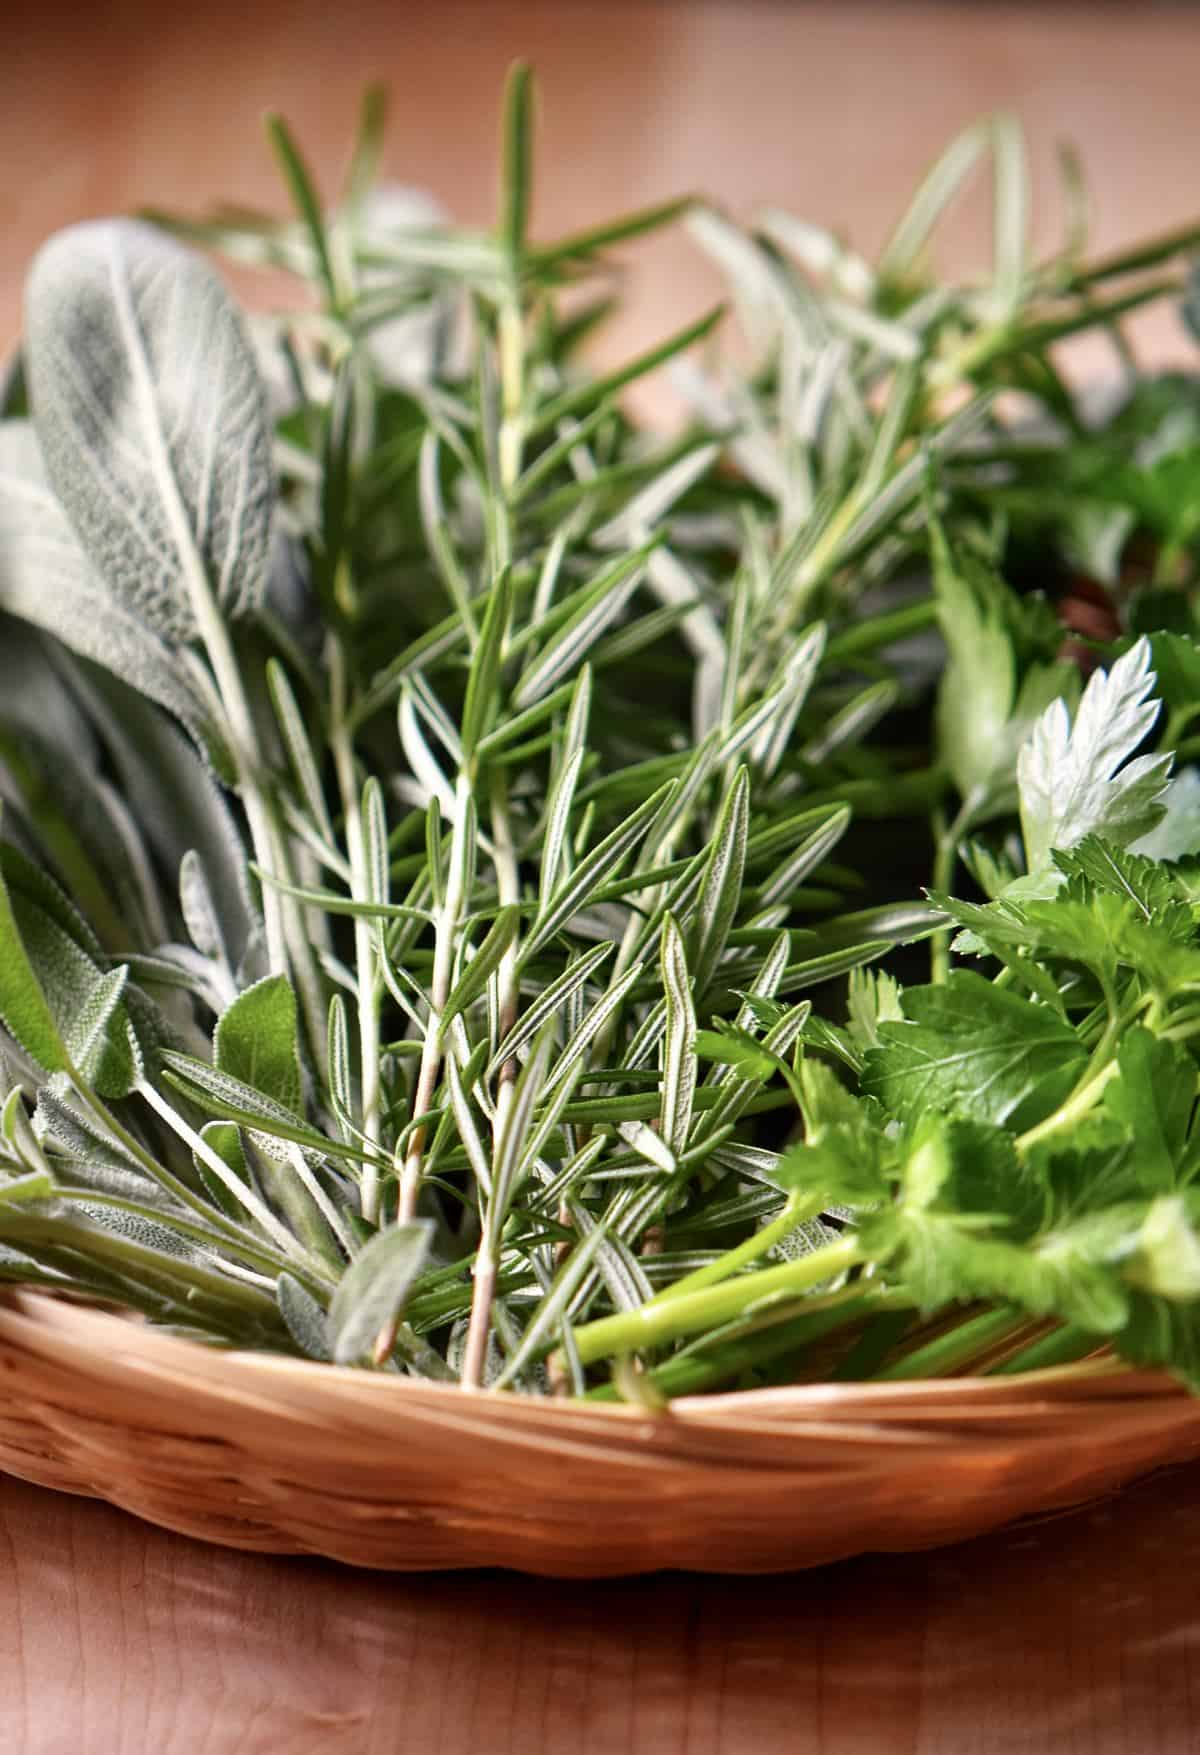 A basket of fresh herbs including rosemary, sage and parsley.